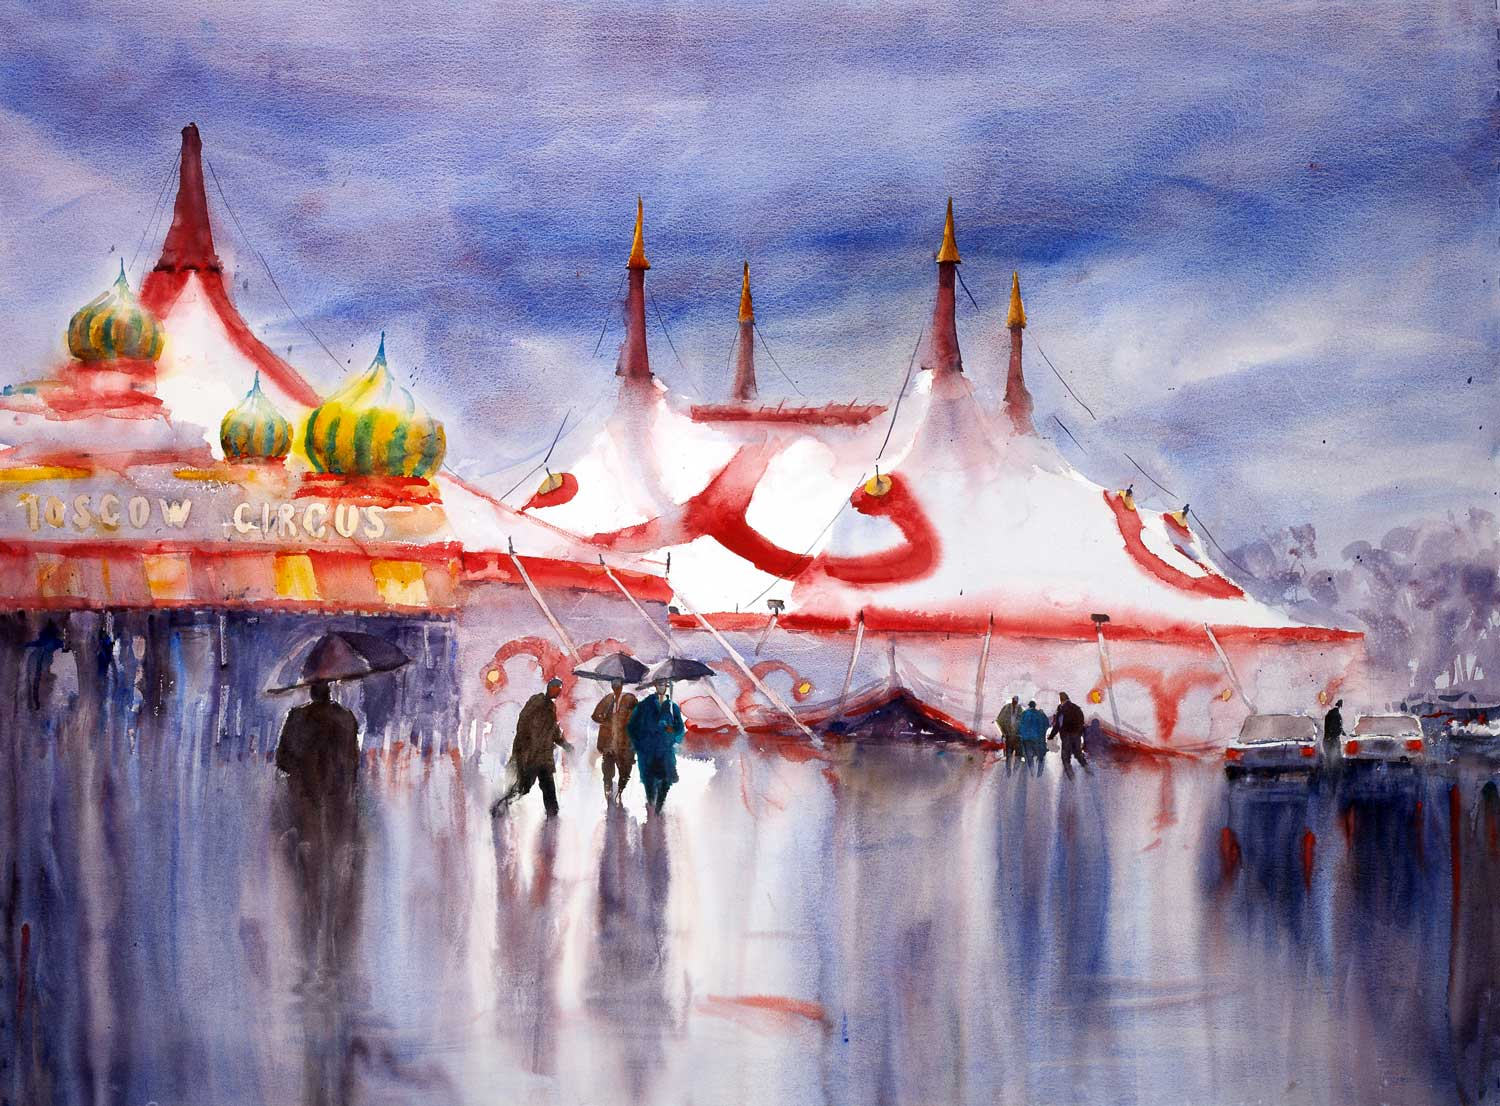 Wet Day, Moscow Circus (Sold)